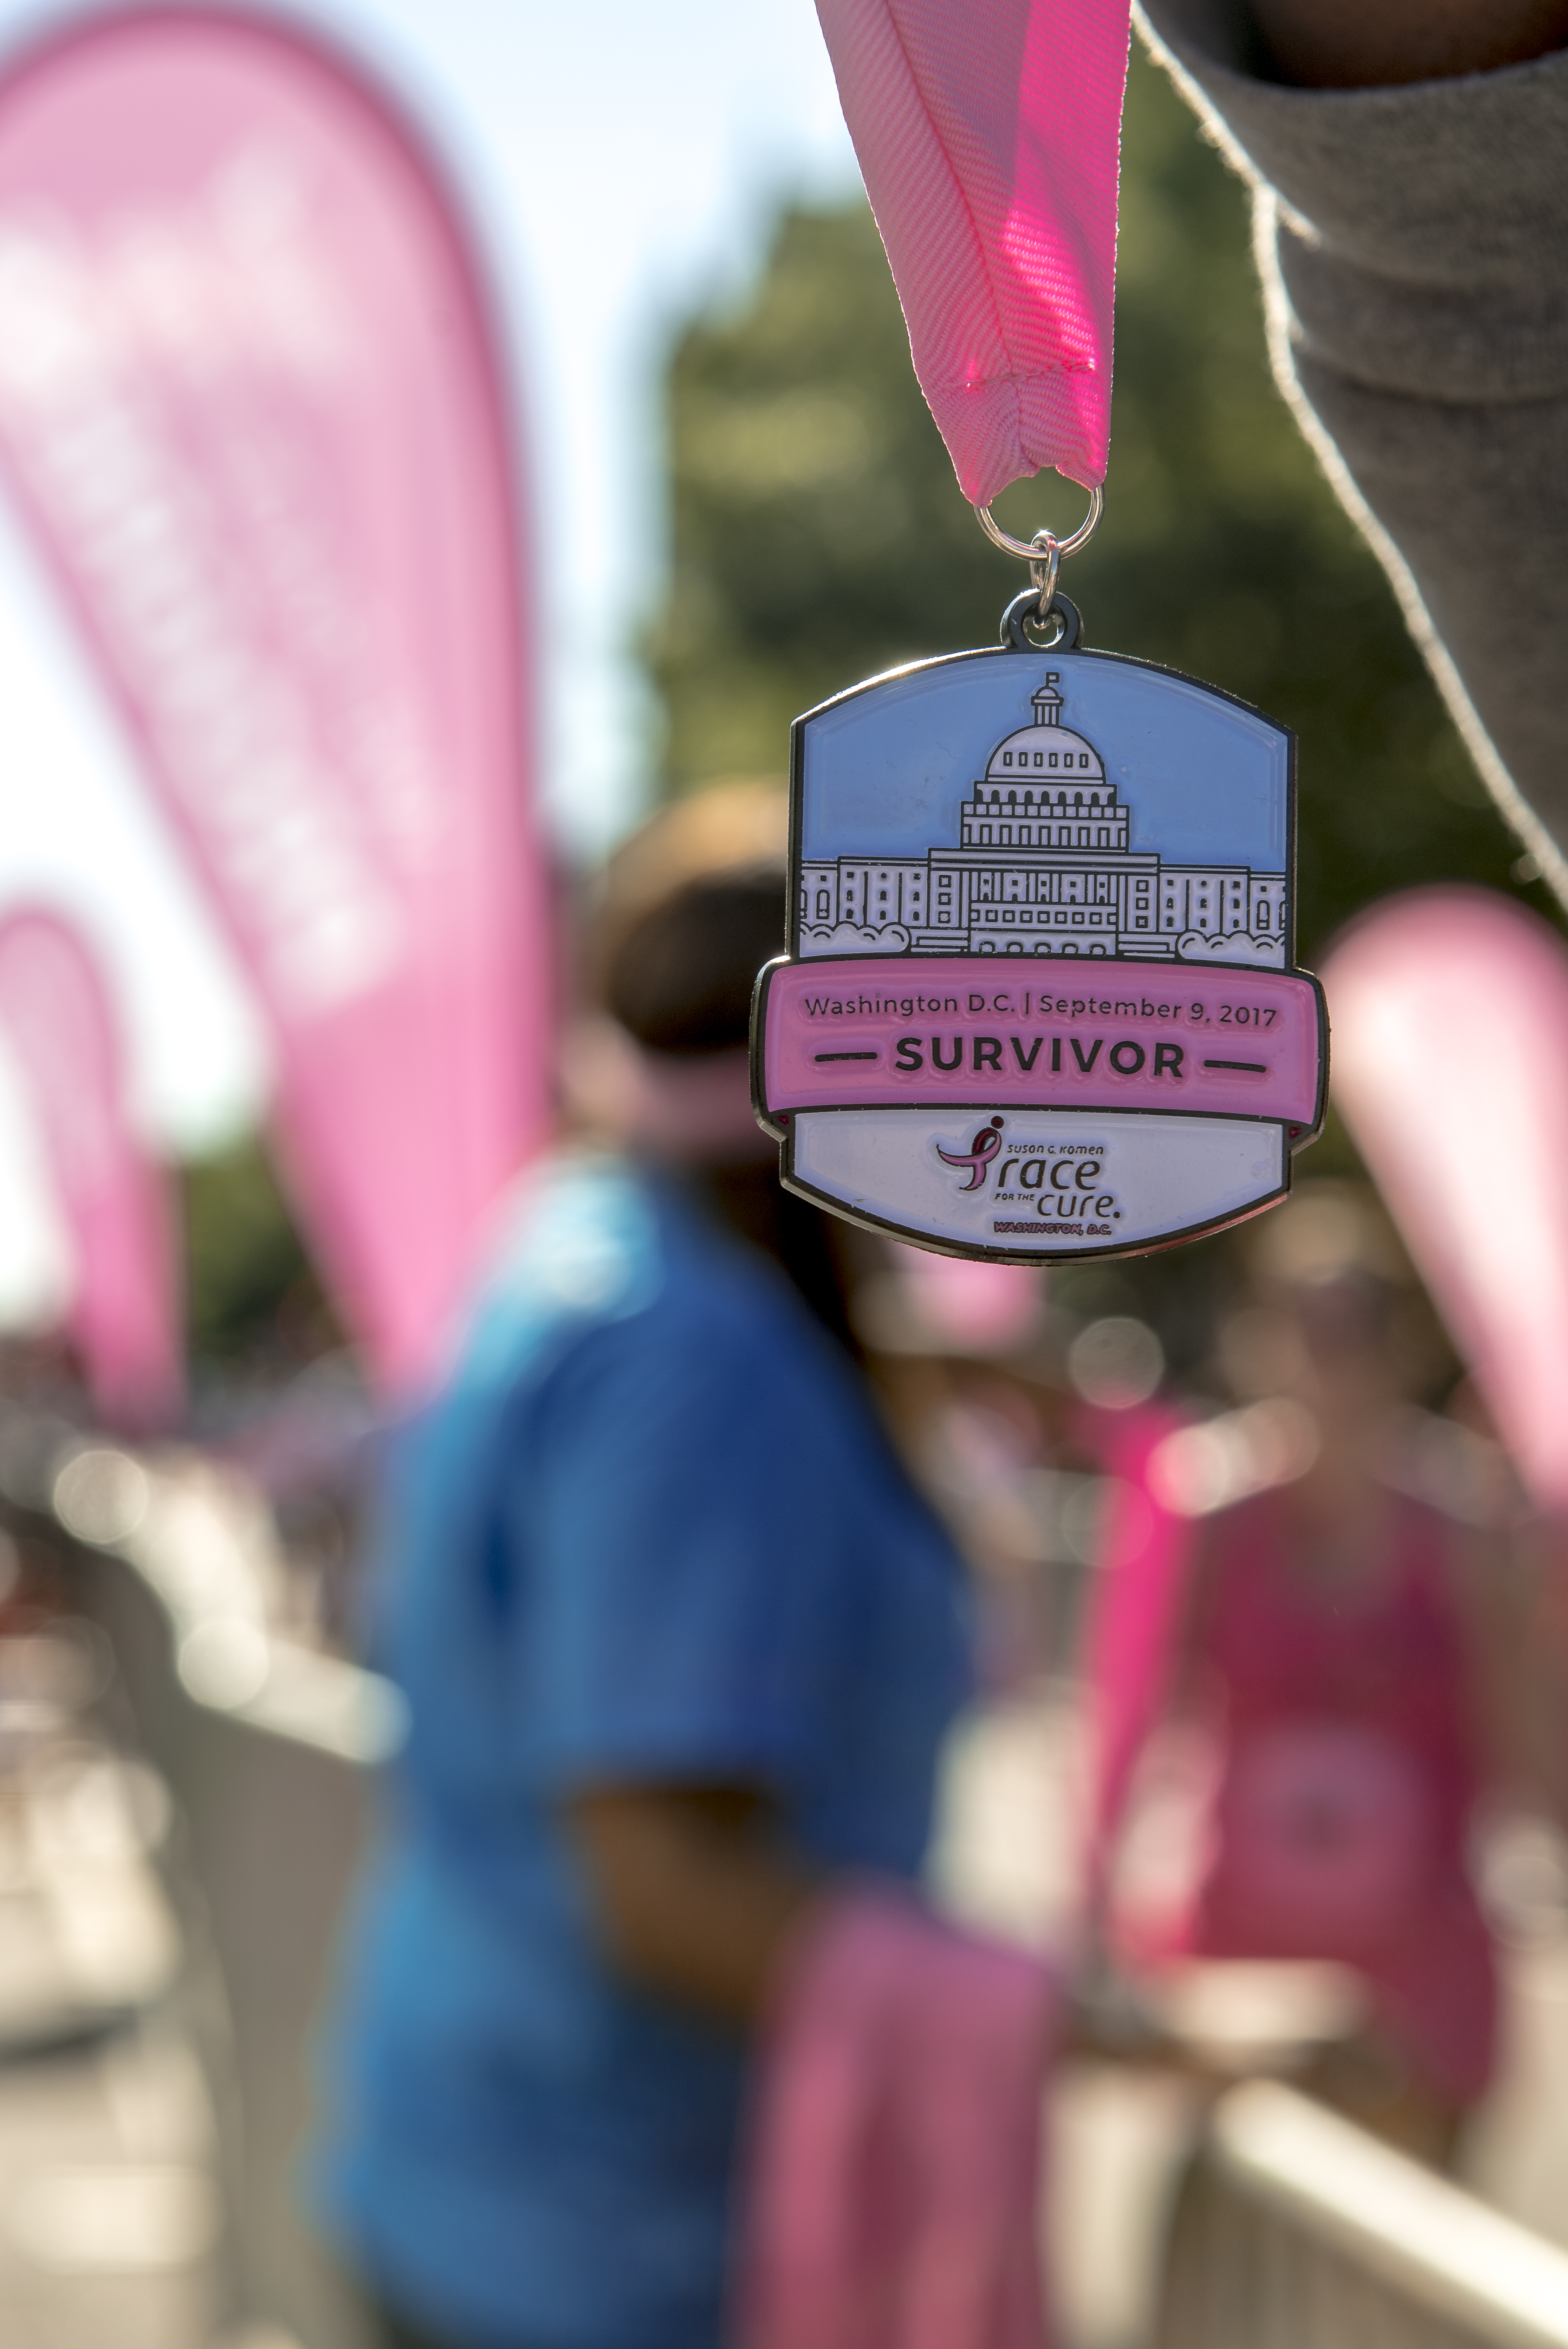 The 28th Annual Komen DC Race for the Cure took place this weekend at Freedom Plaza. The 5k run/walk honors breast cancer survivors, remembers those who succumbed to the battle and helps raise crucial funds for research aimed at finding a cure. Thousands ran, walked or jogged down Pennsylvania Ave. to show their support. (Image: Franz Mahr/ DC Refined)